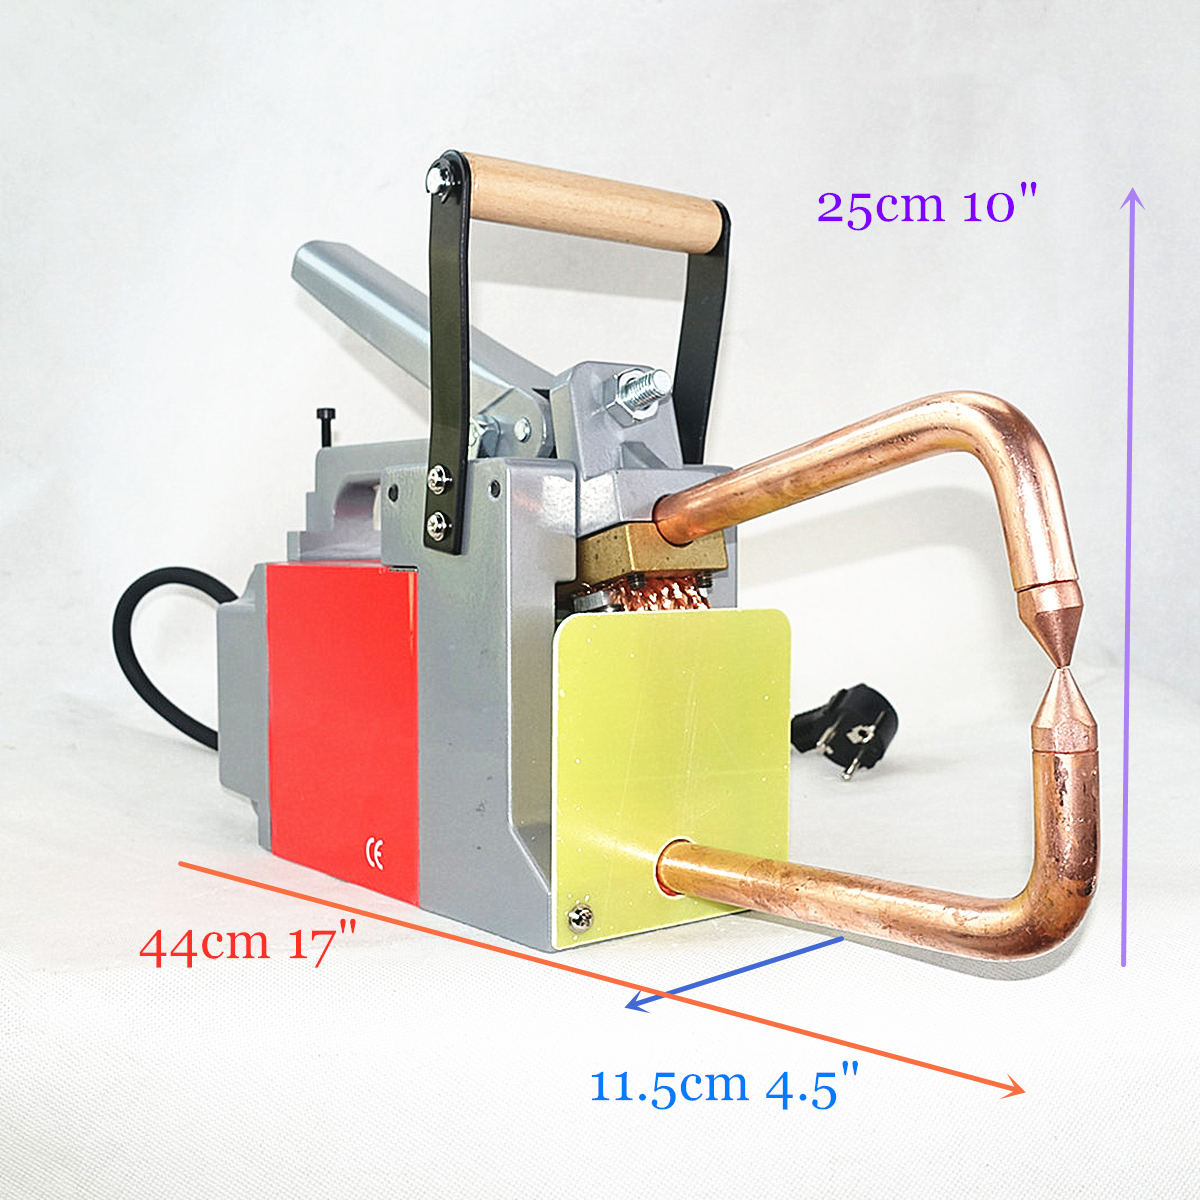 Spot Welder 110v 230V 1 5 1 5mm Steel Plat Joint CE UL Portable Resistance Spot Welding Machine